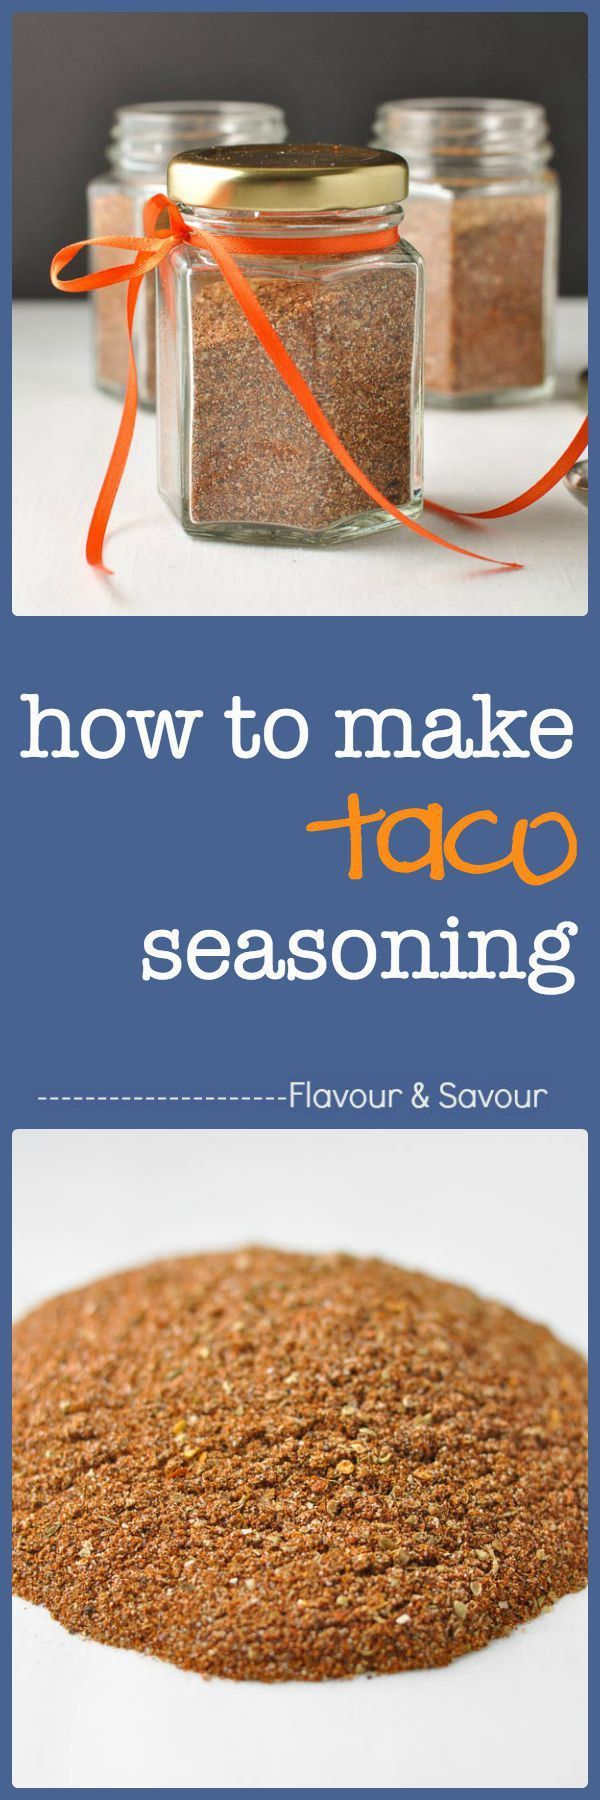 How to Make Taco Seasoning Mix. Takes less than 5 minutes! Makes a great gift.